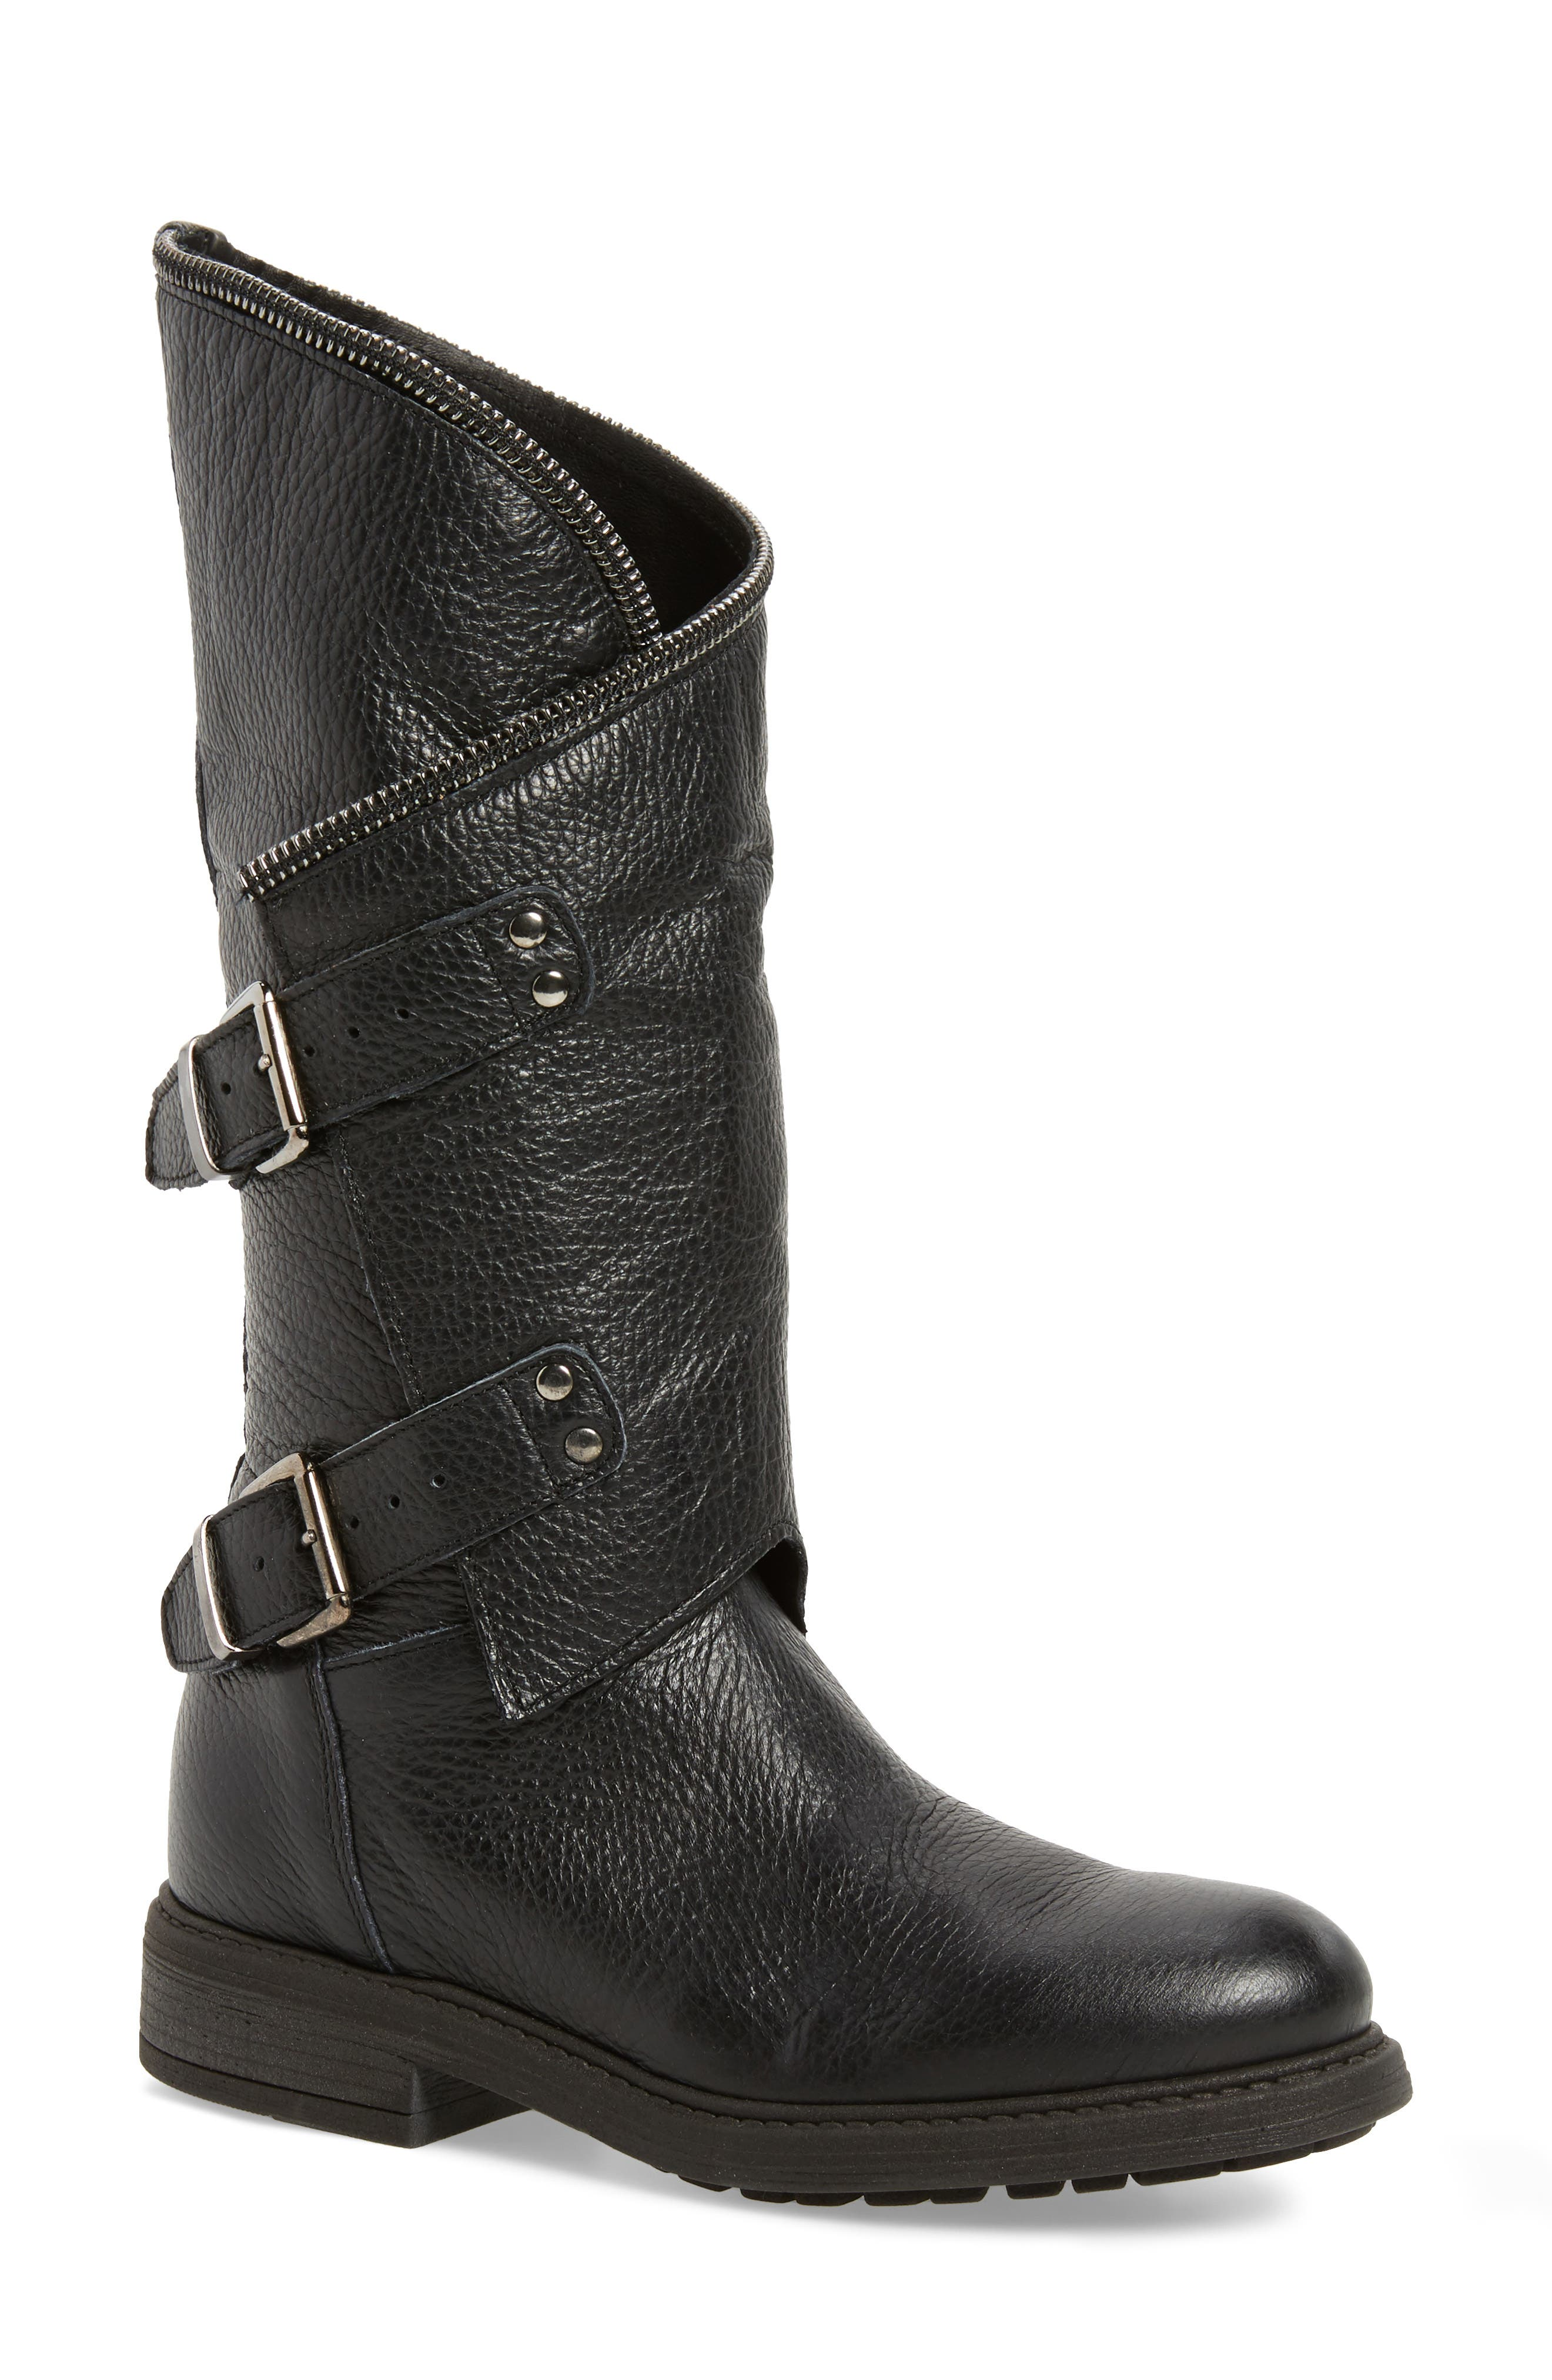 Bray Asymmetrical Zip Boot,                         Main,                         color, Black Leather